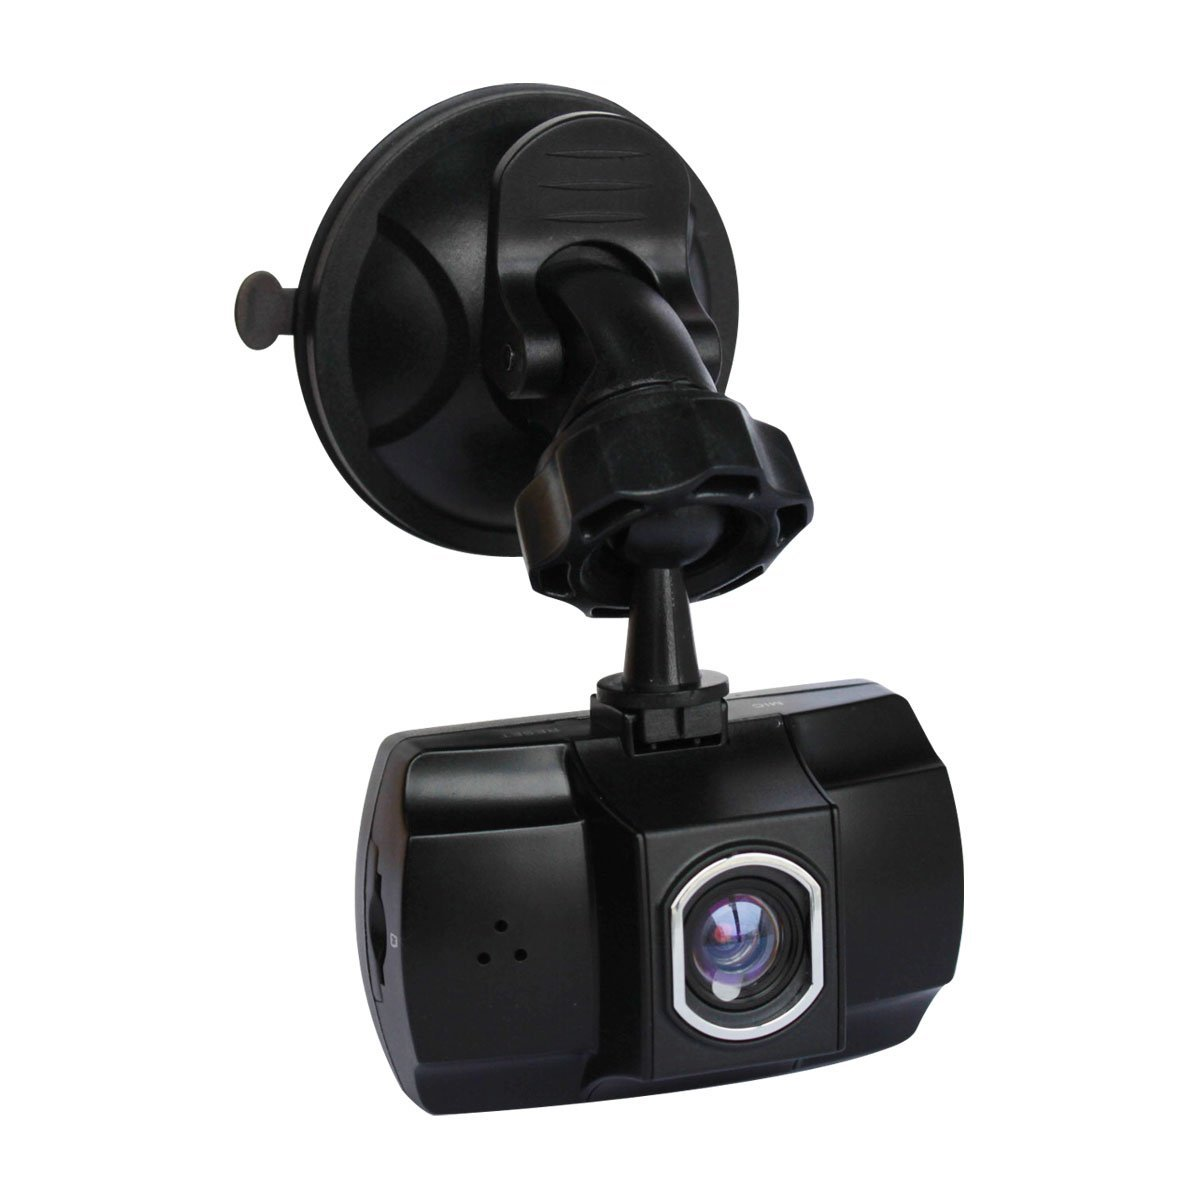 Conbrov Vehicle Security Cameras